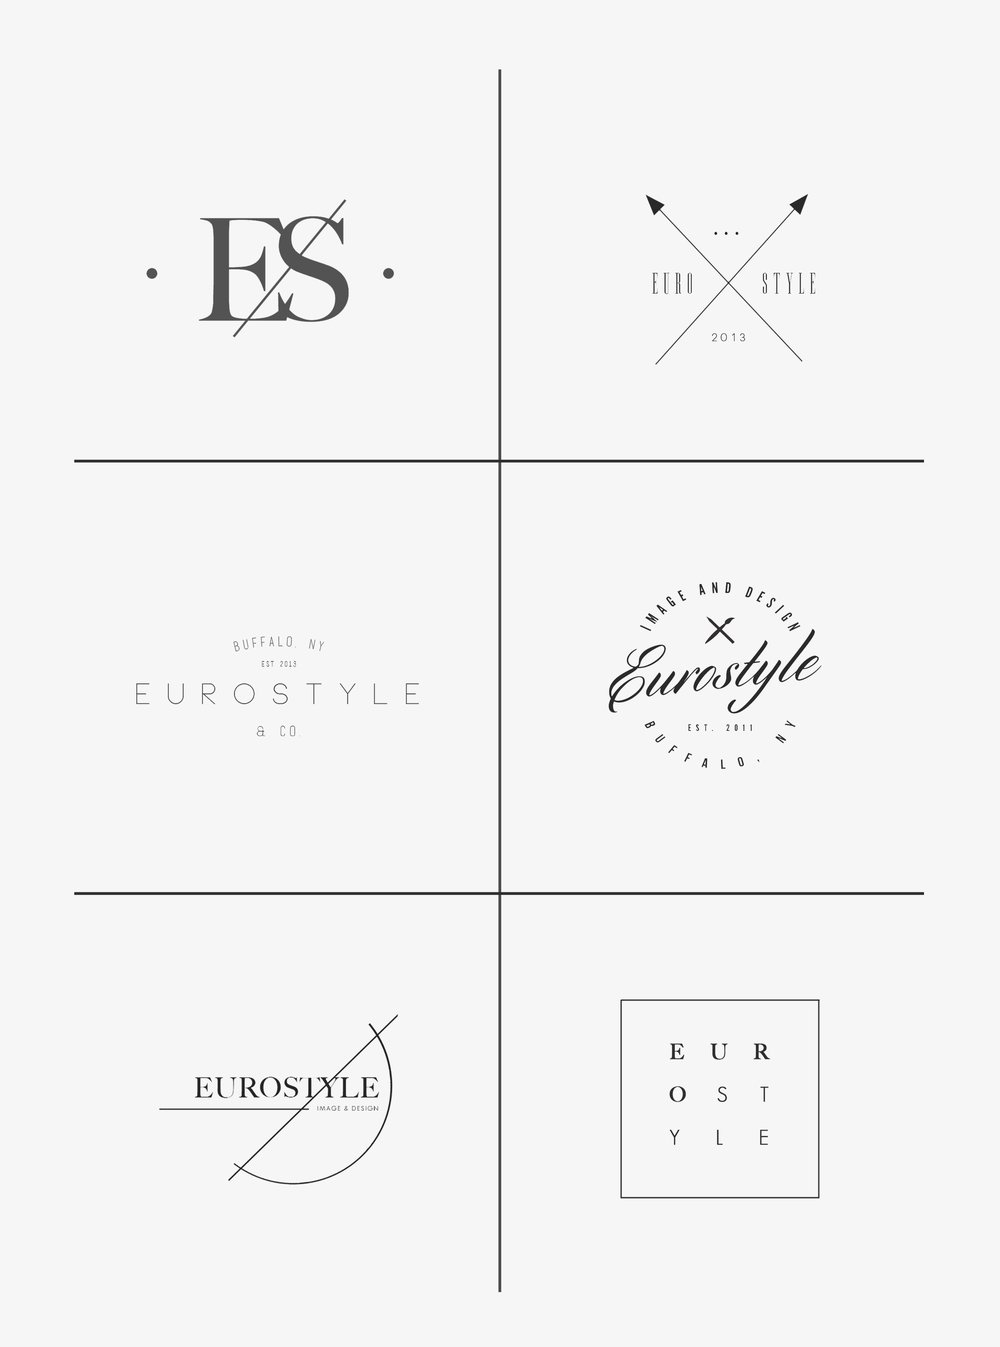 Portfolio eurostyle apparel logo christina laing they were looking for a design that had a hand drawn feel such as in old sketches and blueprints with modern elements mixed in as well fresh and clean malvernweather Images